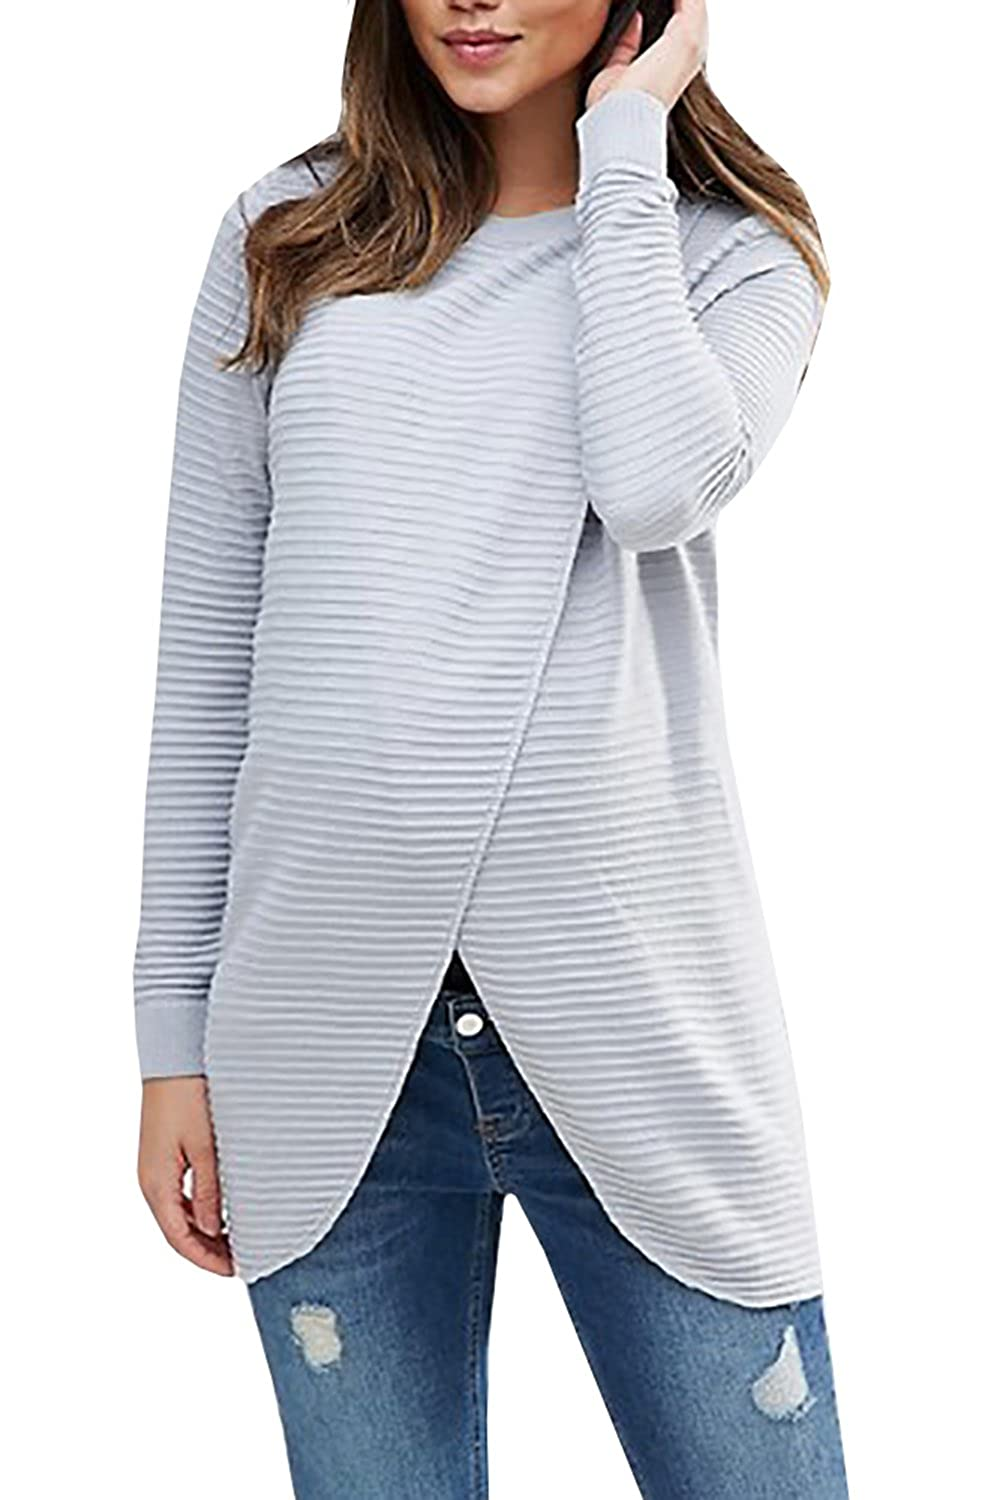 Maternity Sweaters | Amazon.com